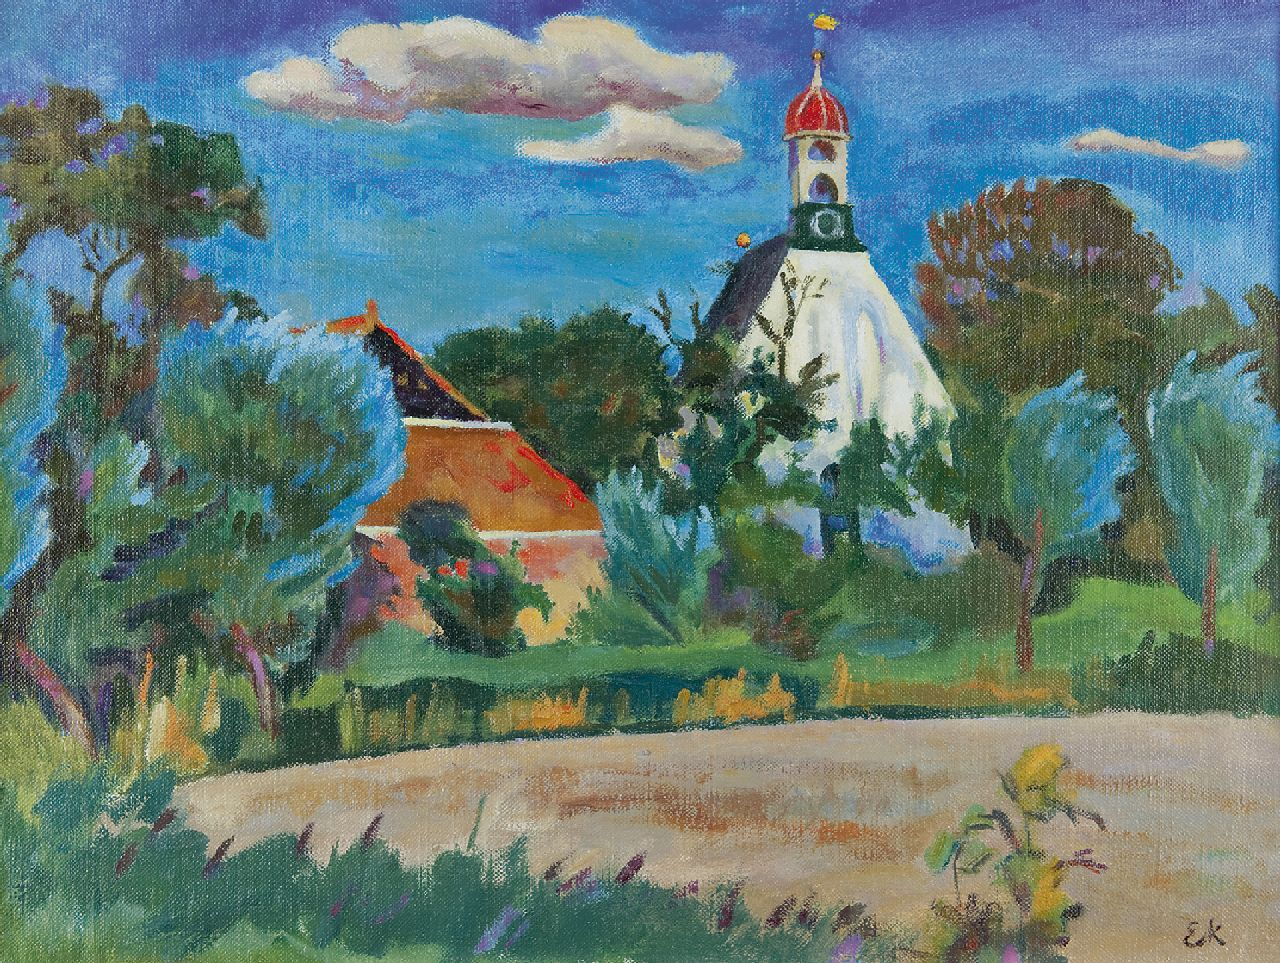 Ekke Kleima | The church of Breede, oil on canvas, 46.3 x 61.1 cm, signed l.r. with initials and painted between 1938-1940